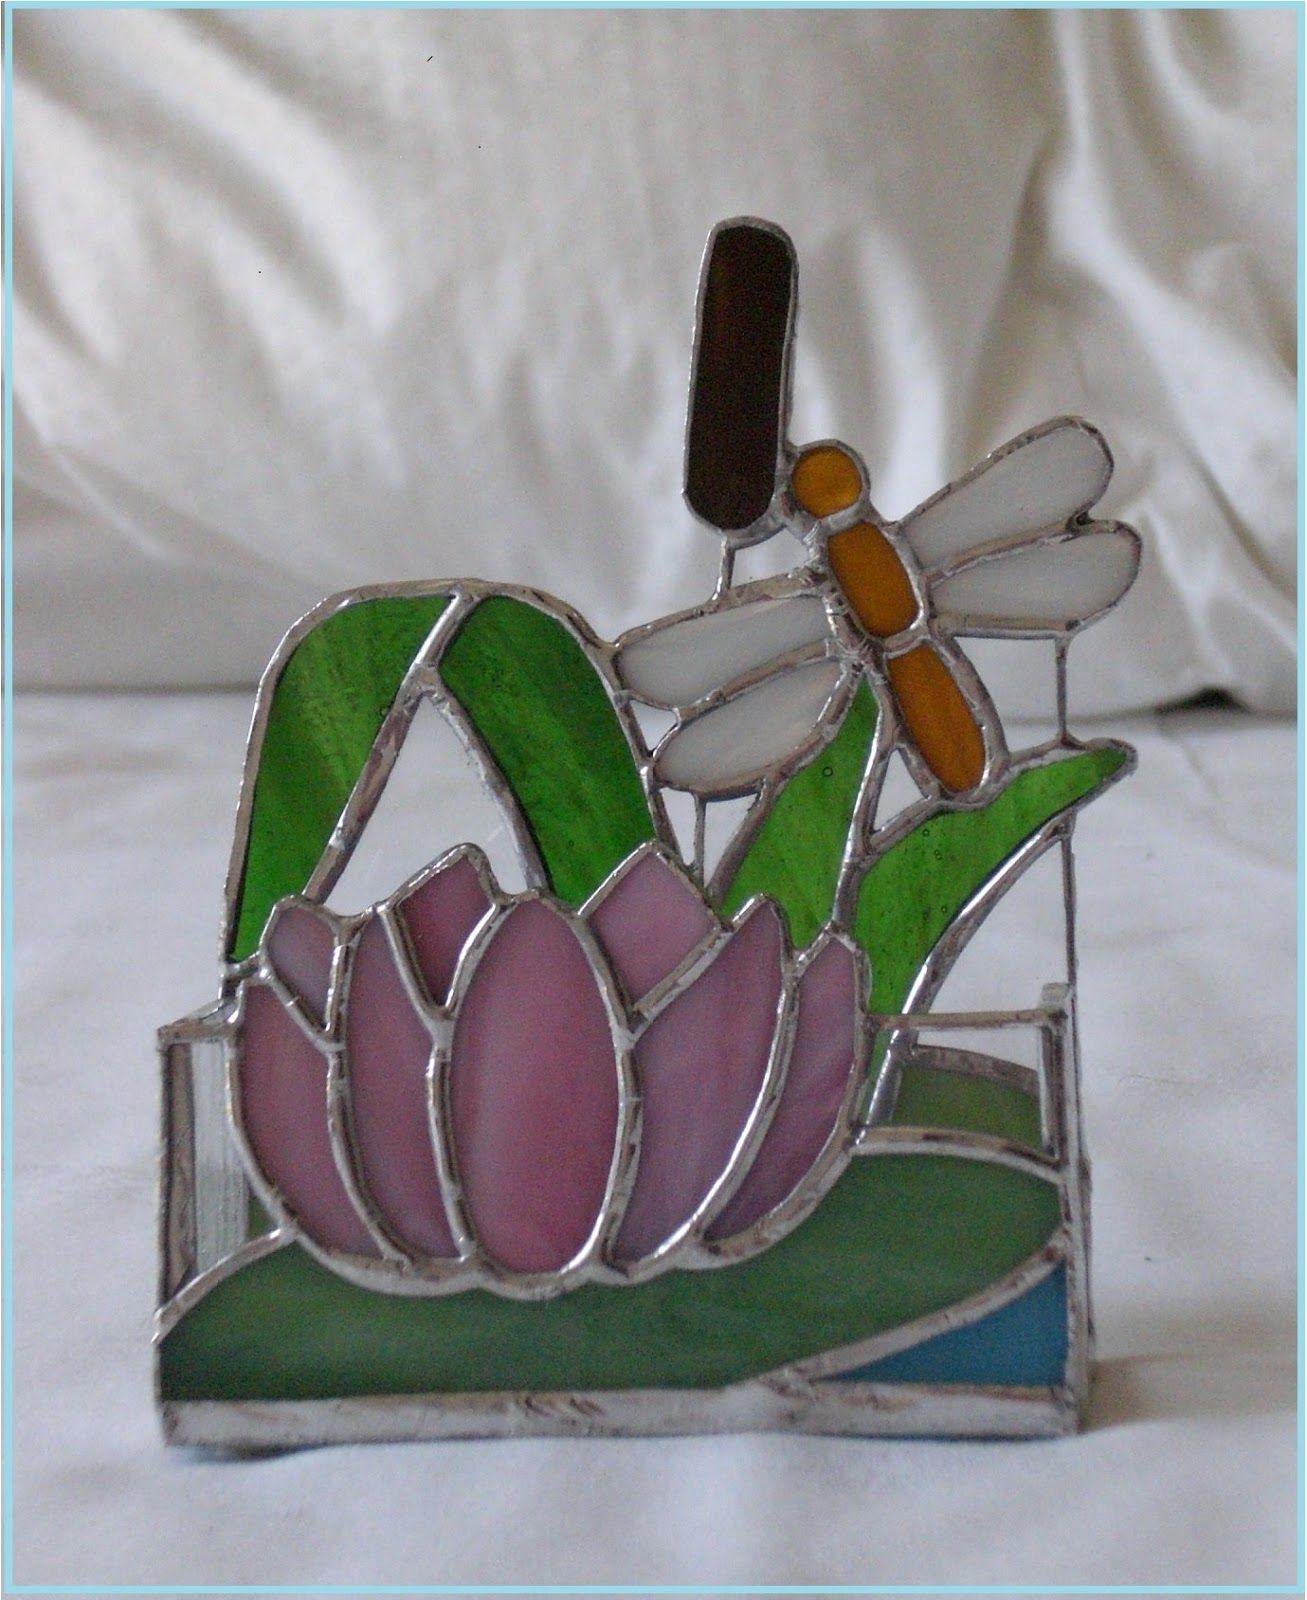 Stained glass business cards holder by http://belleepoquevetrate ...